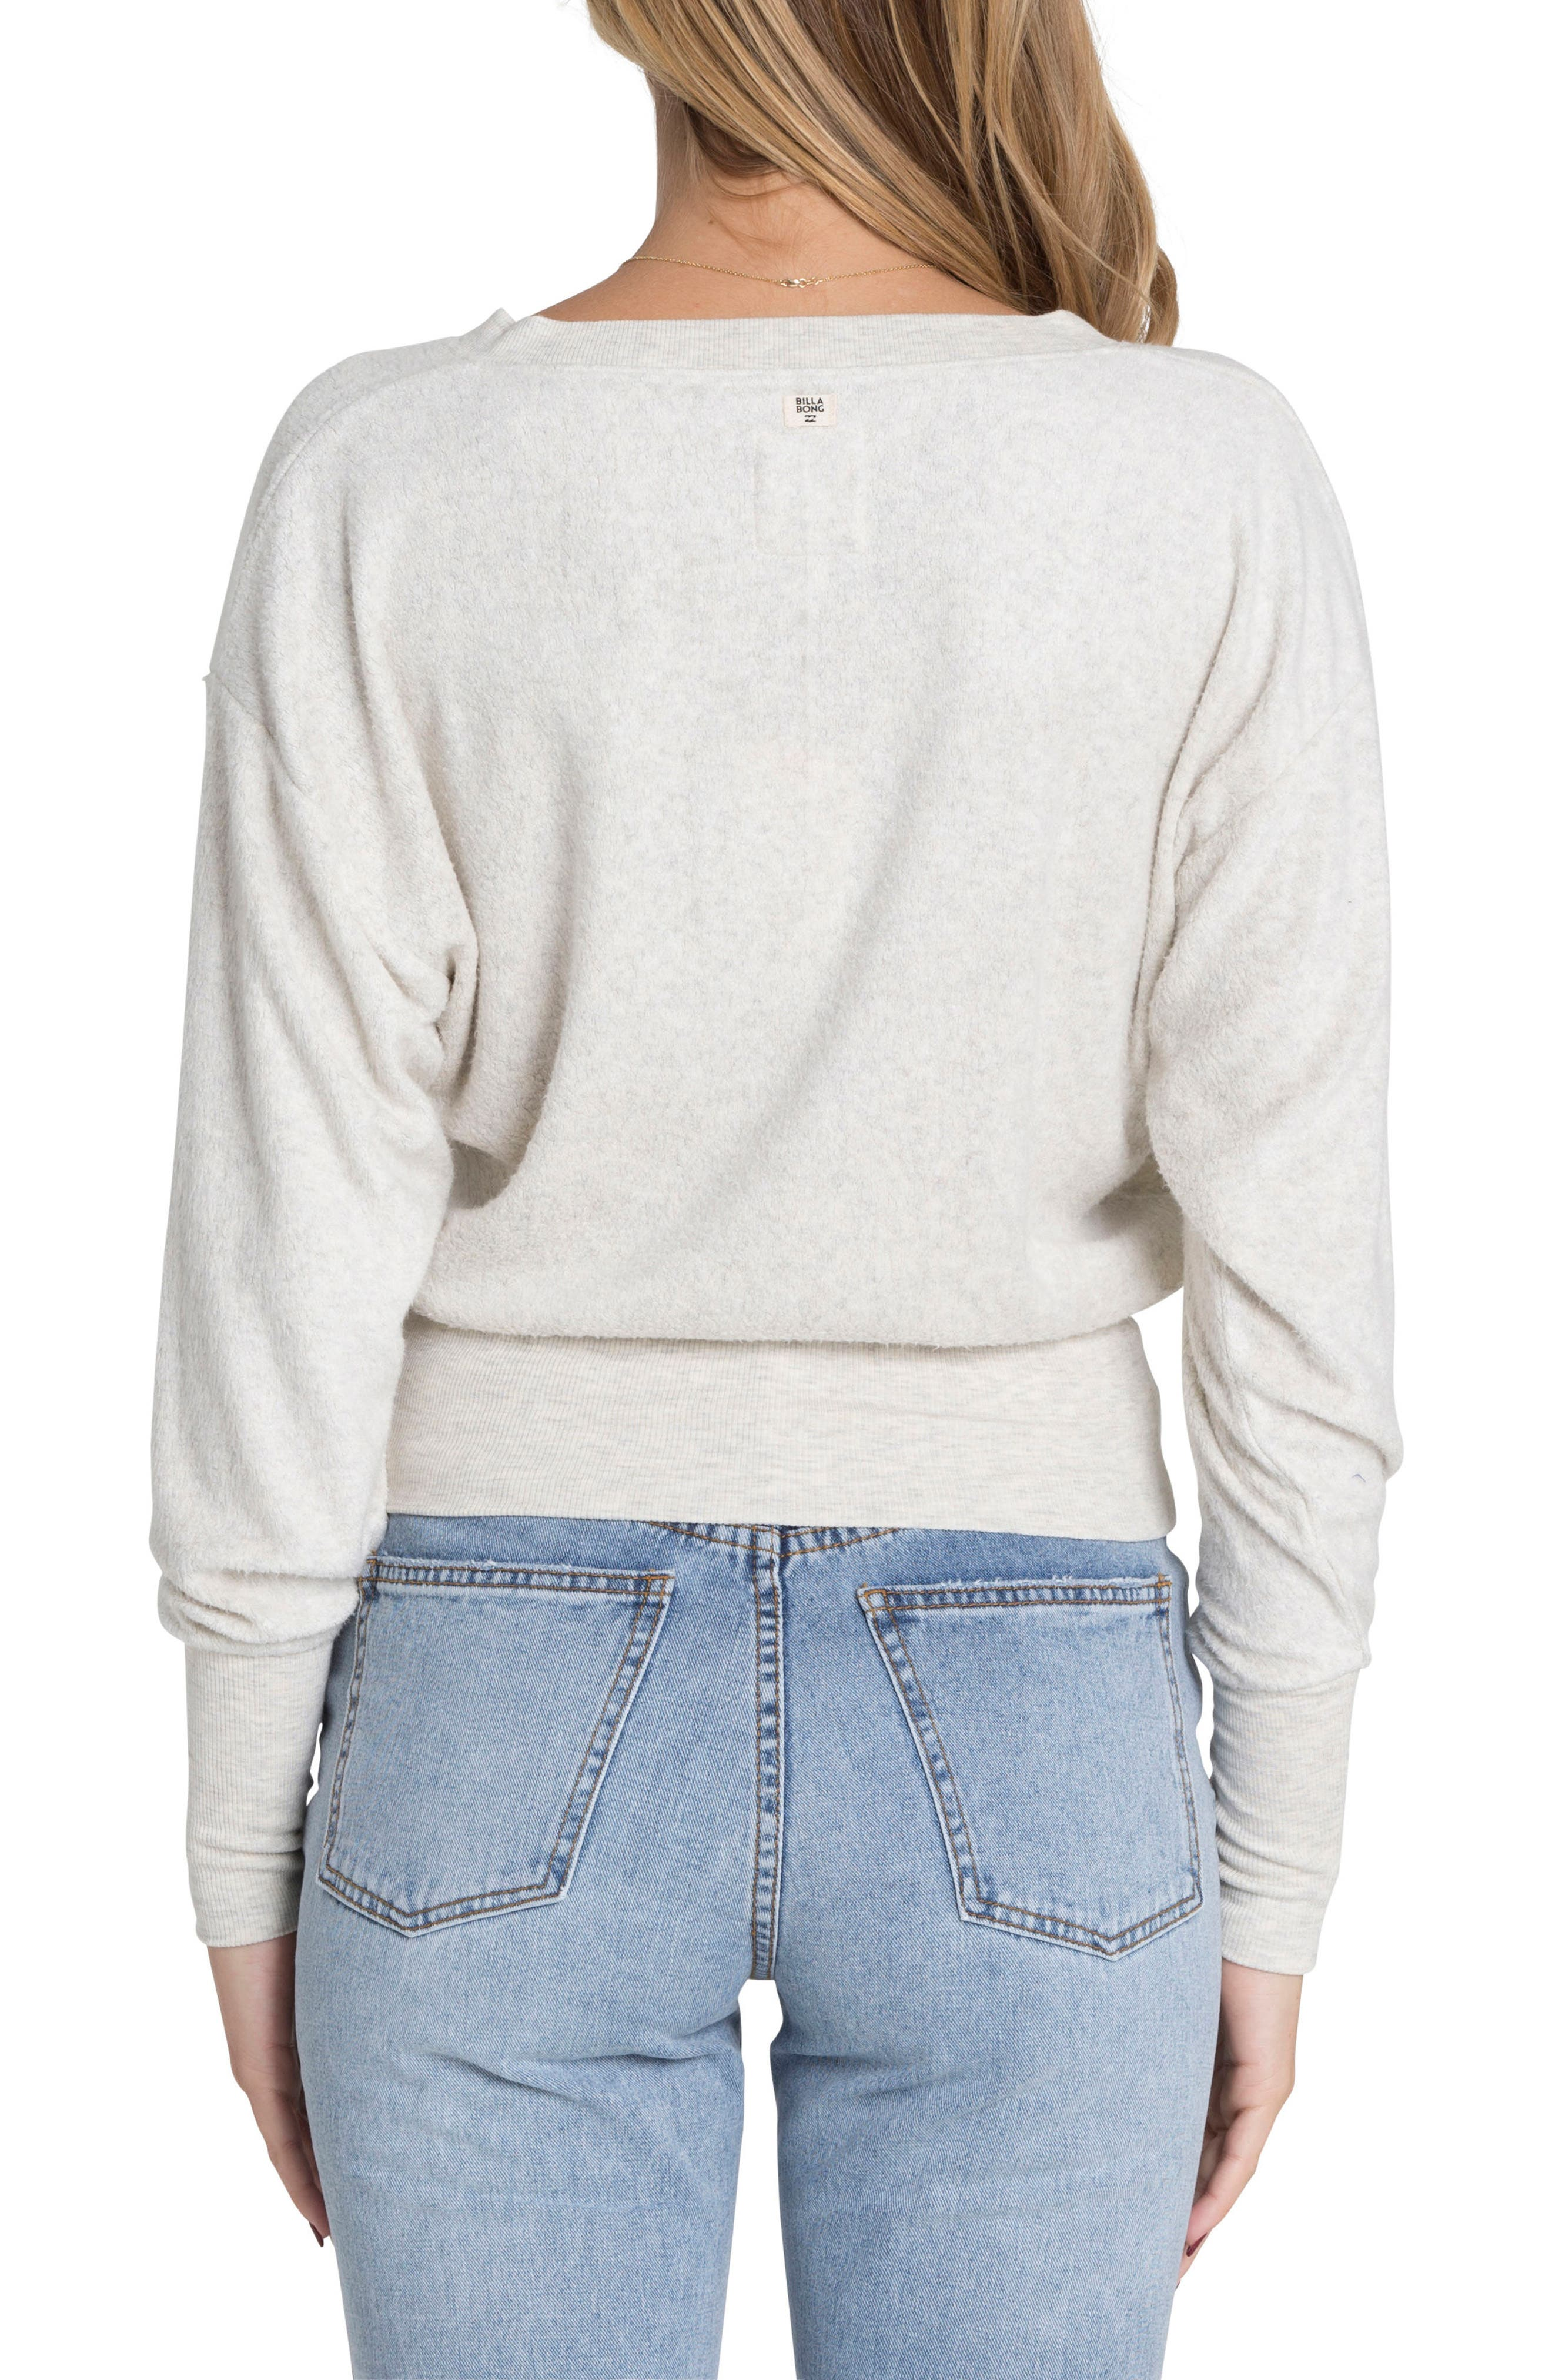 All I Need Sweater,                             Alternate thumbnail 2, color,                             Ice Athletic Grey